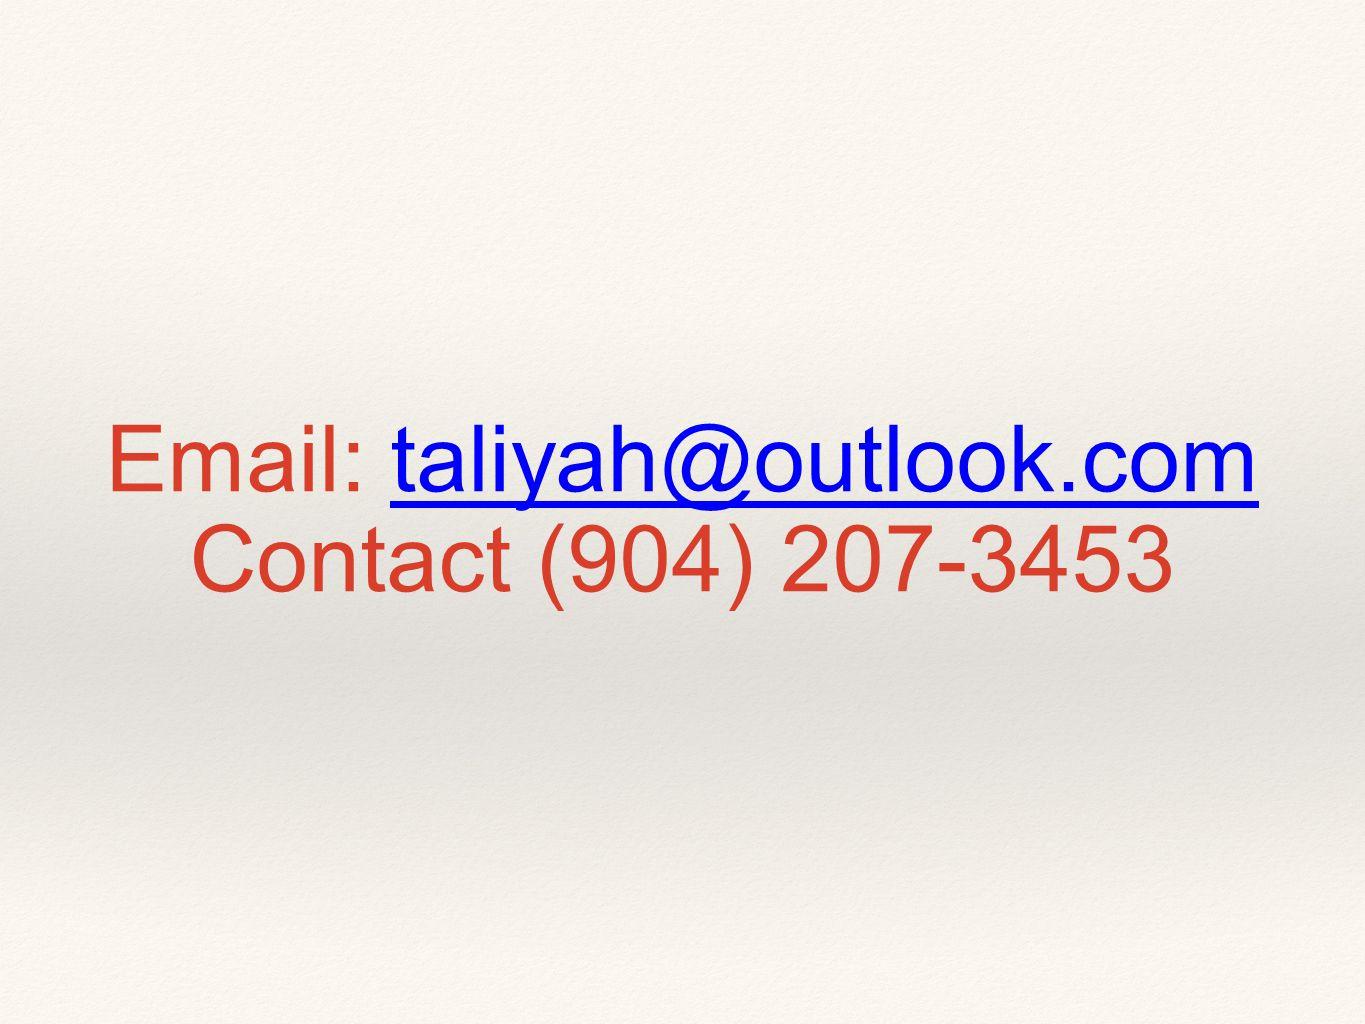 Email: taliyah@outlook.com Contact (904) 207-3453taliyah@outlook.com